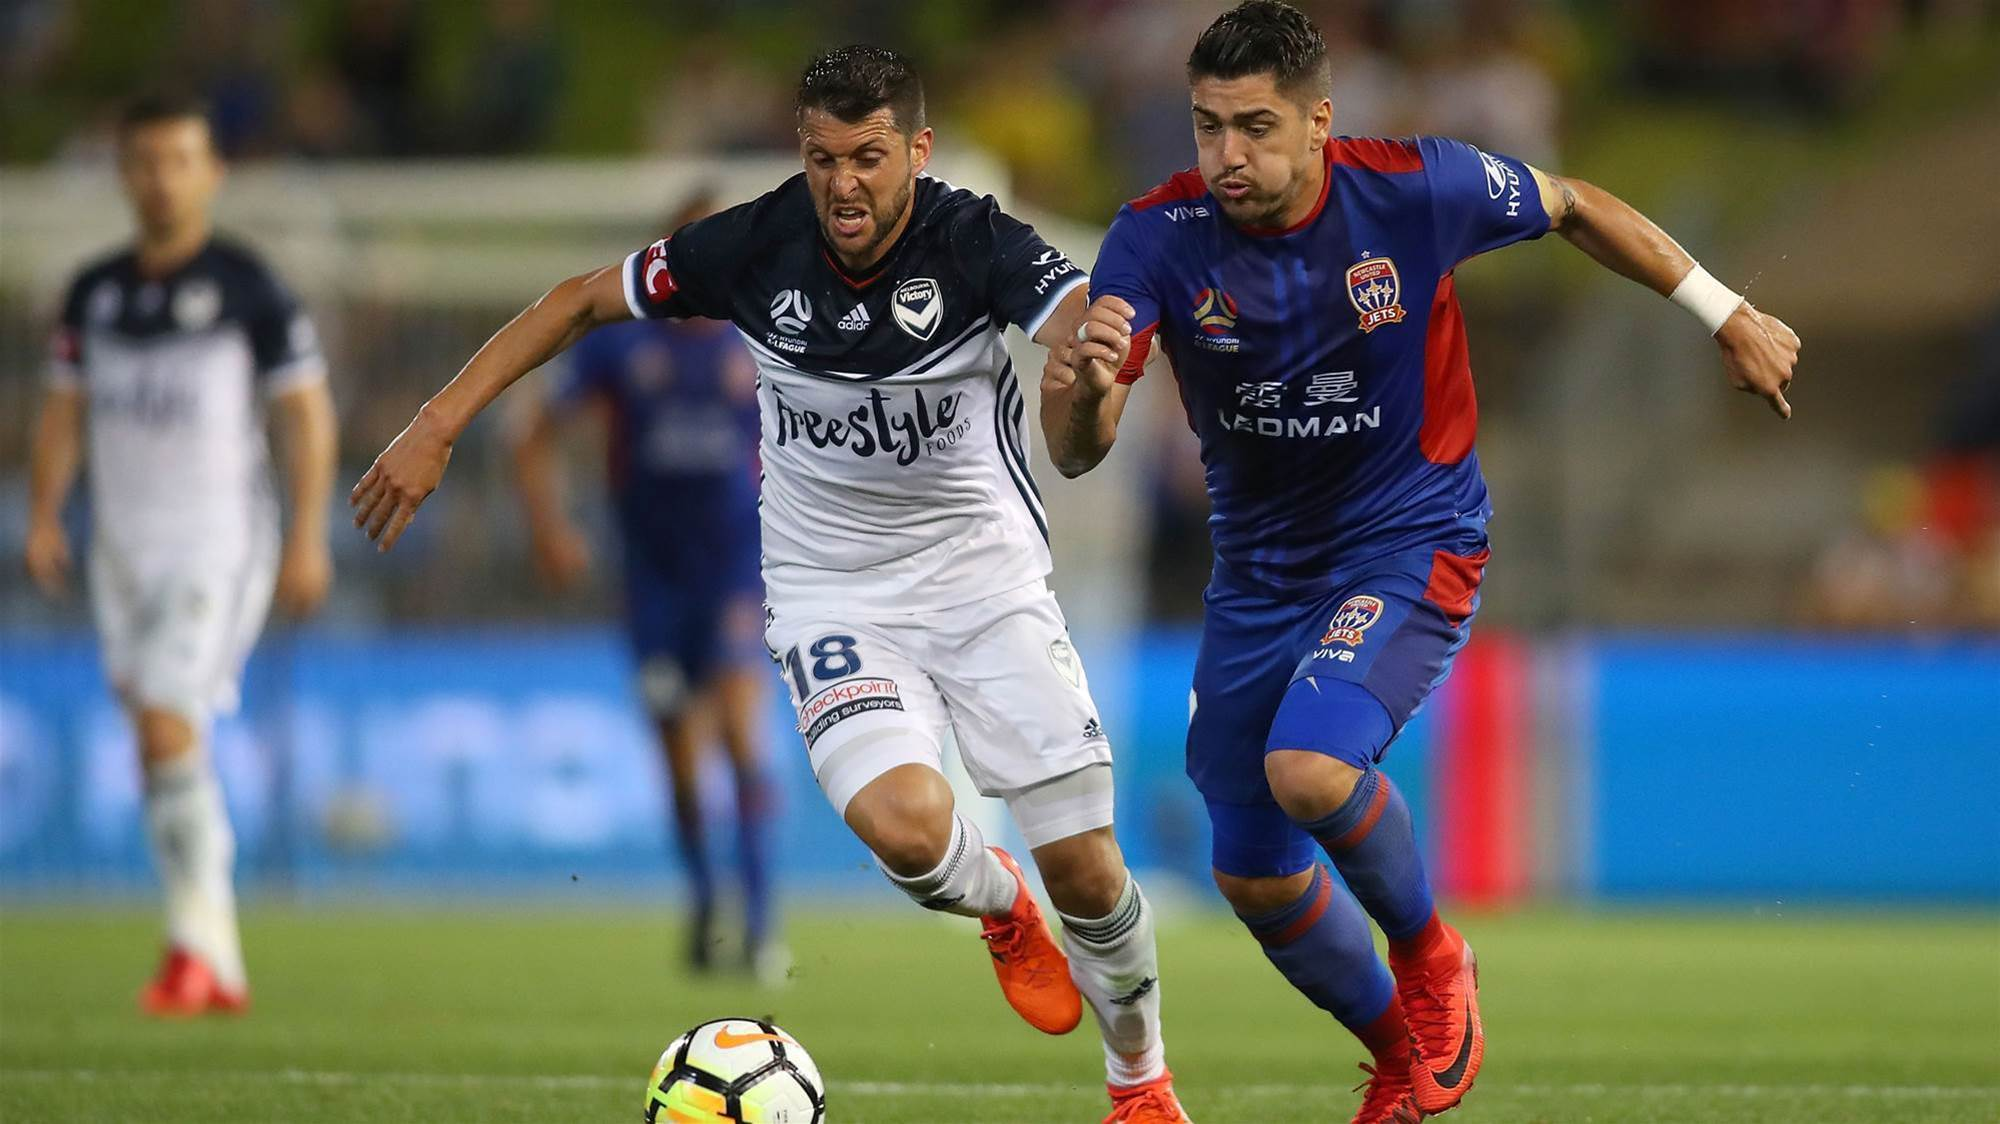 Newcastle Jets v Melbourne Victory player ratings